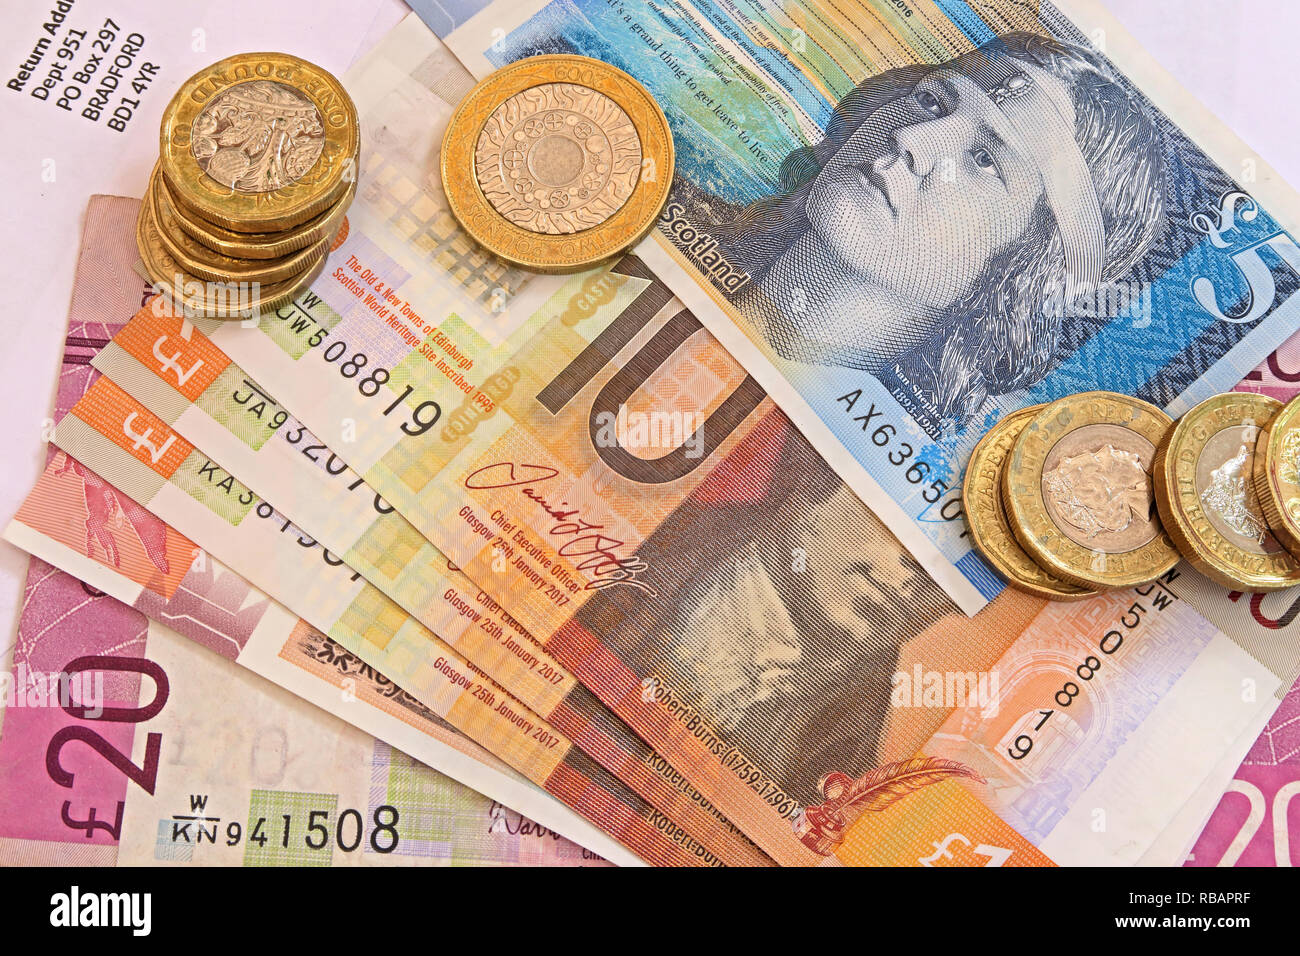 gotonysmith,HotpixUK,@HotpixUK,UK,notes,plastic,currency,10,5,ten,five,pound note,STG,British,bank,banking,accepted,acceptable,currency conversion,sterling,conversion from sterling,investment,budget,save,savings,Clydesdale,RBS,£5,£10,£20,twenty,finance,investments,debt,Universal Credit,cash,black,market,economy,Cash In Hand